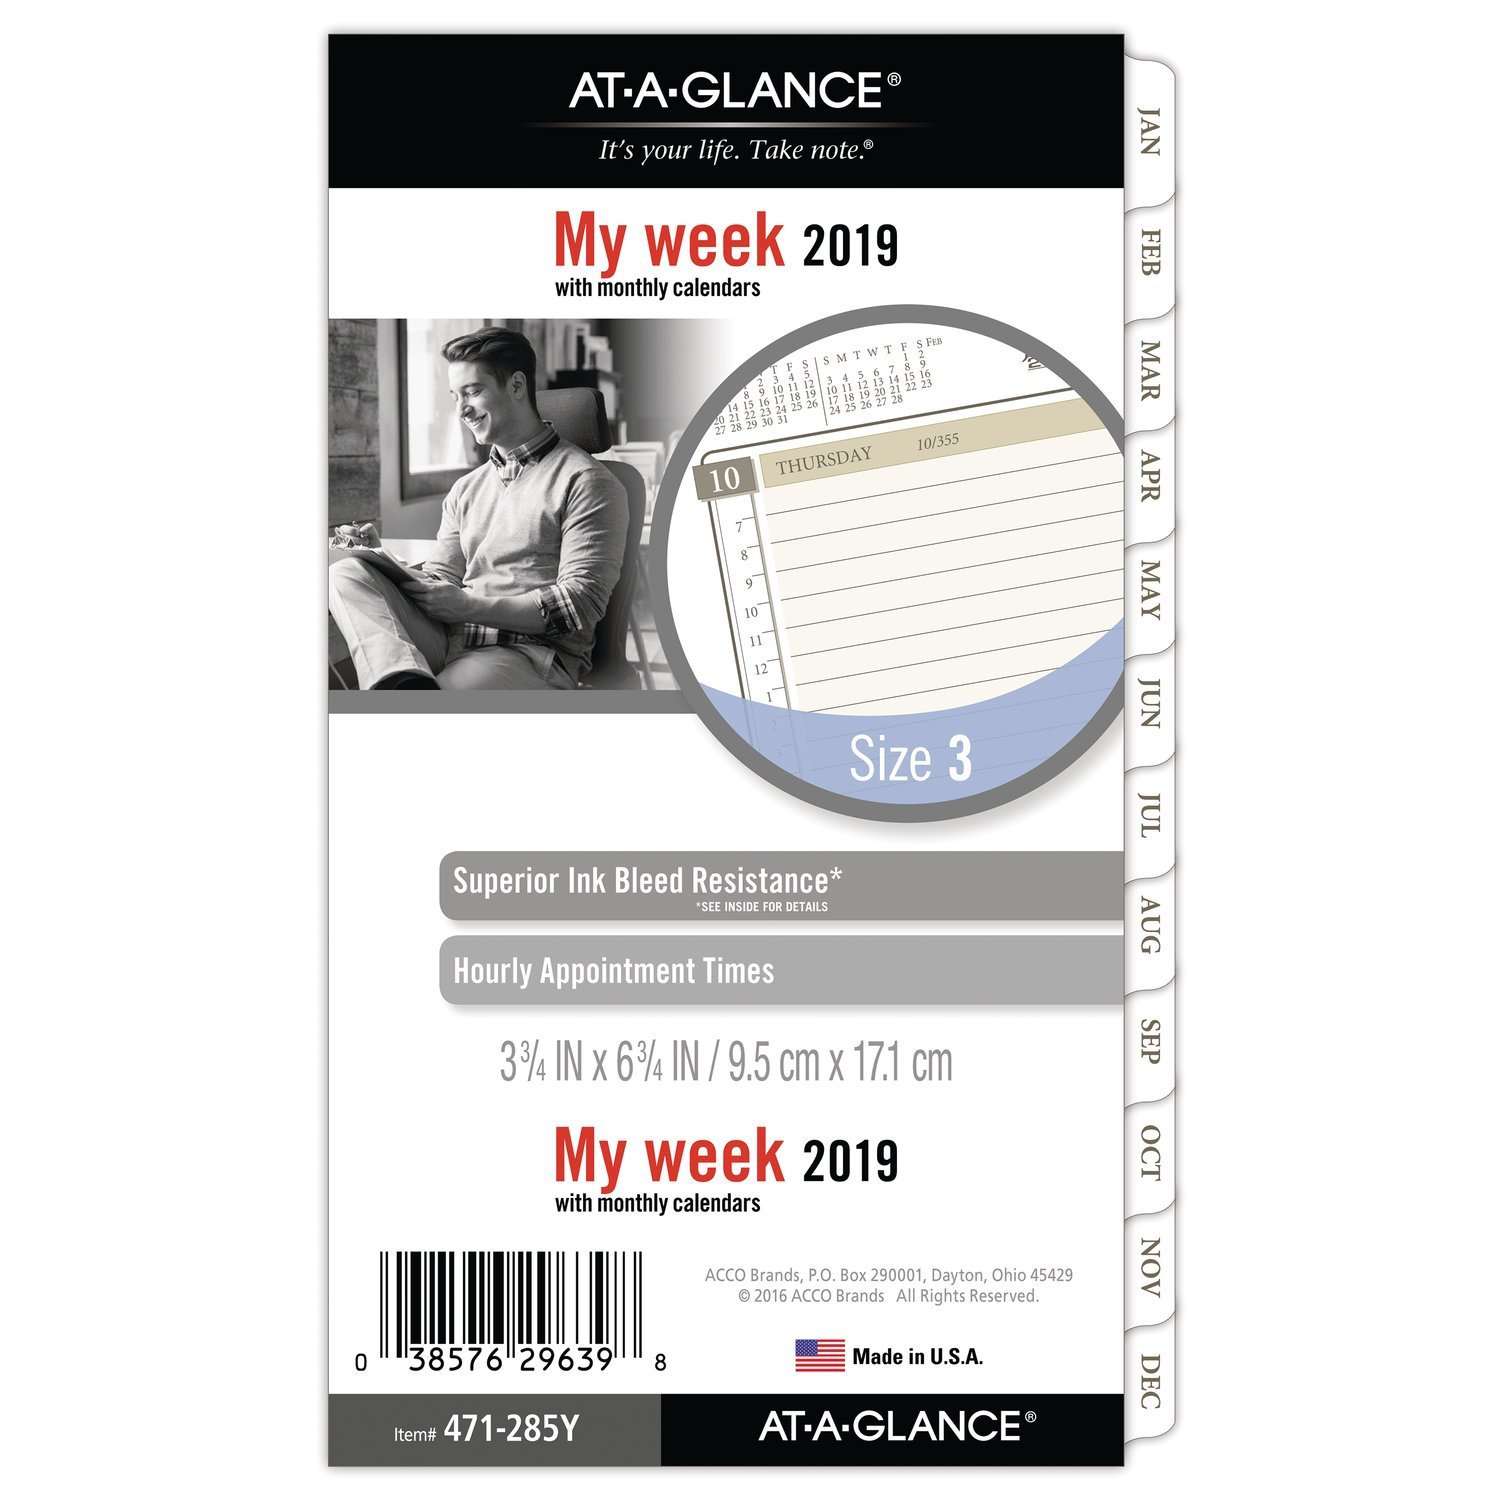 AT-A-GLANCE 2019 Weekly & Monthly Planner Refill, Day Runner , 3-3/4'' 6-3/4'', Portable Size 3, Loose Leaf (471-285Y)